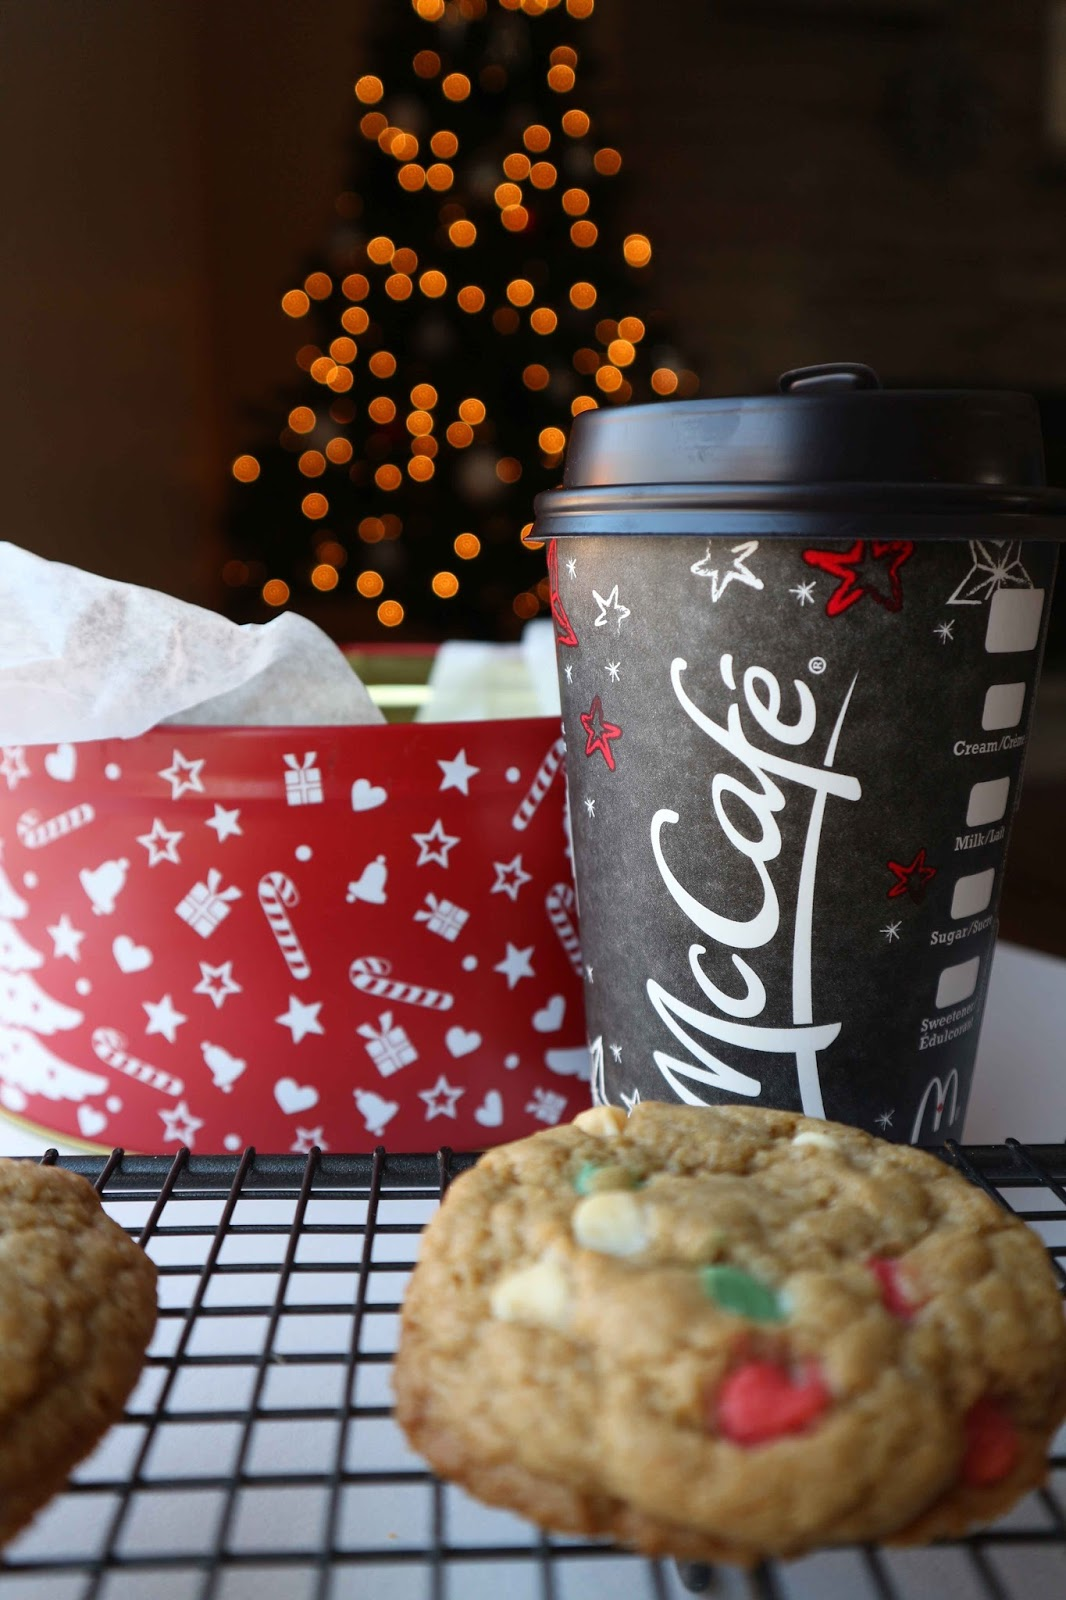 Christmas chocolate chip cookies with Crème Brûlée Latte - McCafe